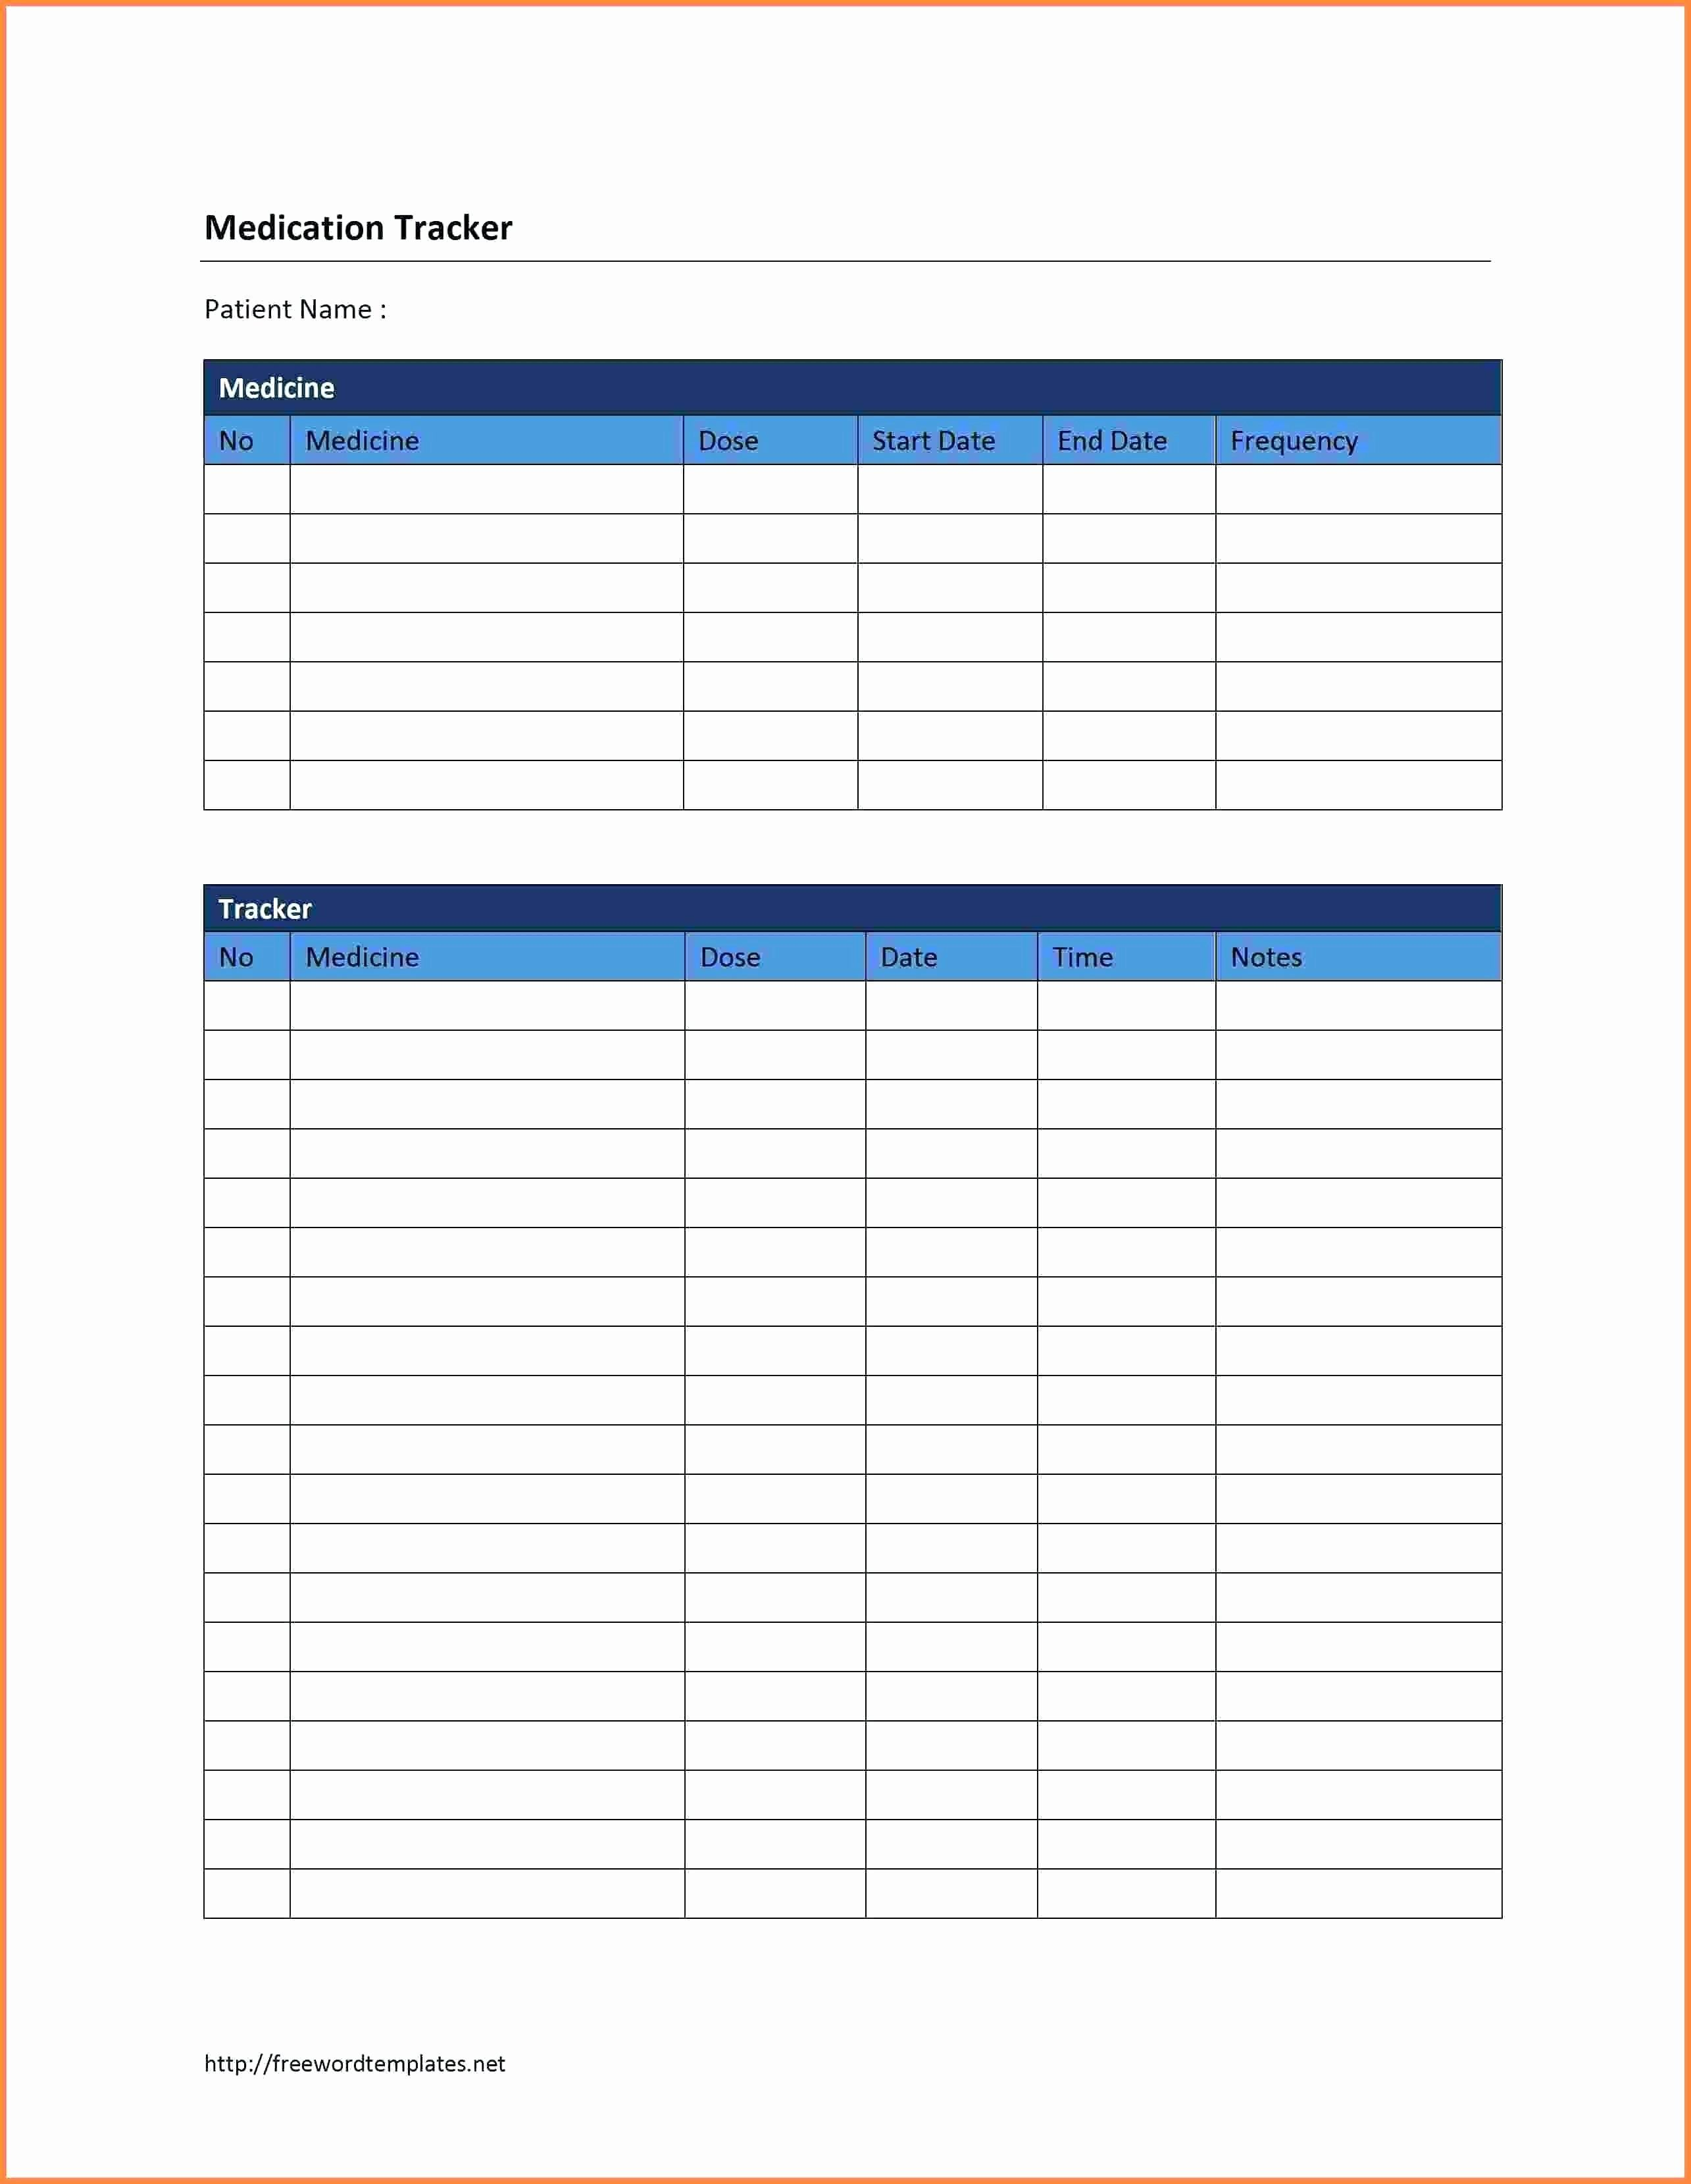 Weekly Medication Schedule Template Awesome Daily Medicationdule Spreadsheet Template Worksh Schedule Template Daily Schedule Template Job Application Template Excel template for medication schedule